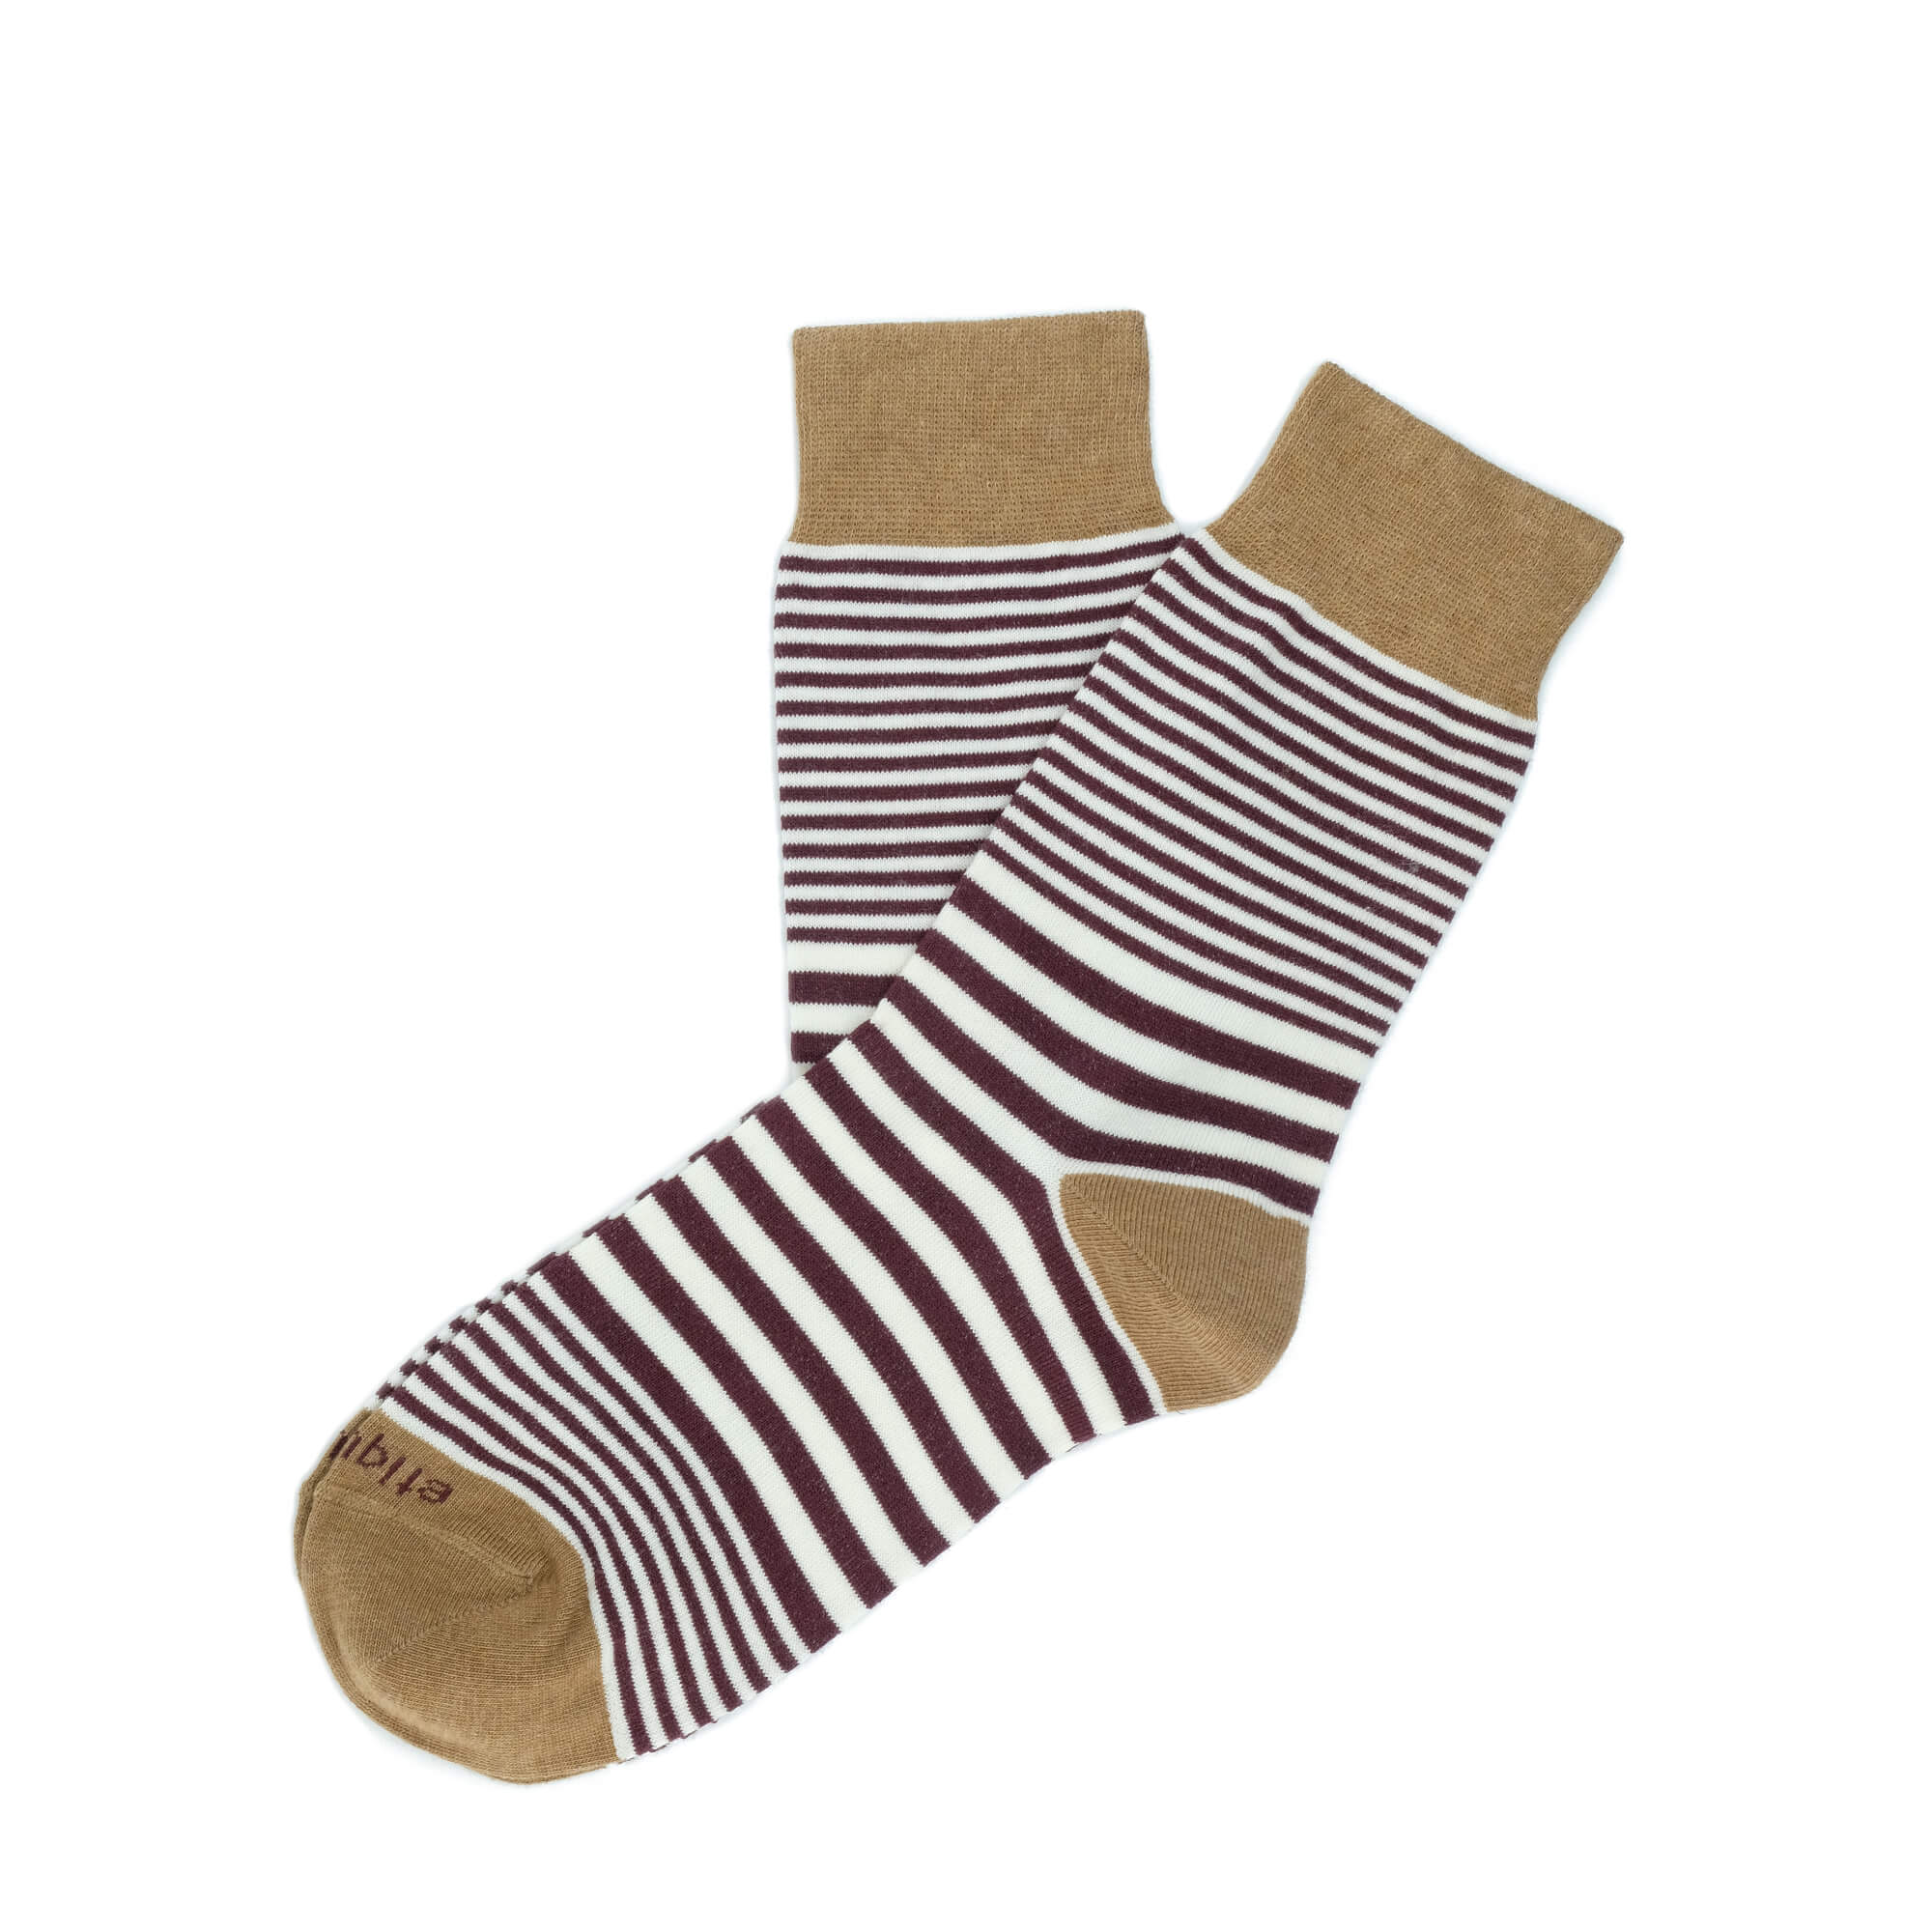 Womens Socks - Sailor Stripes Women's Socks - Bordeaux⎪Etiquette Clothiers